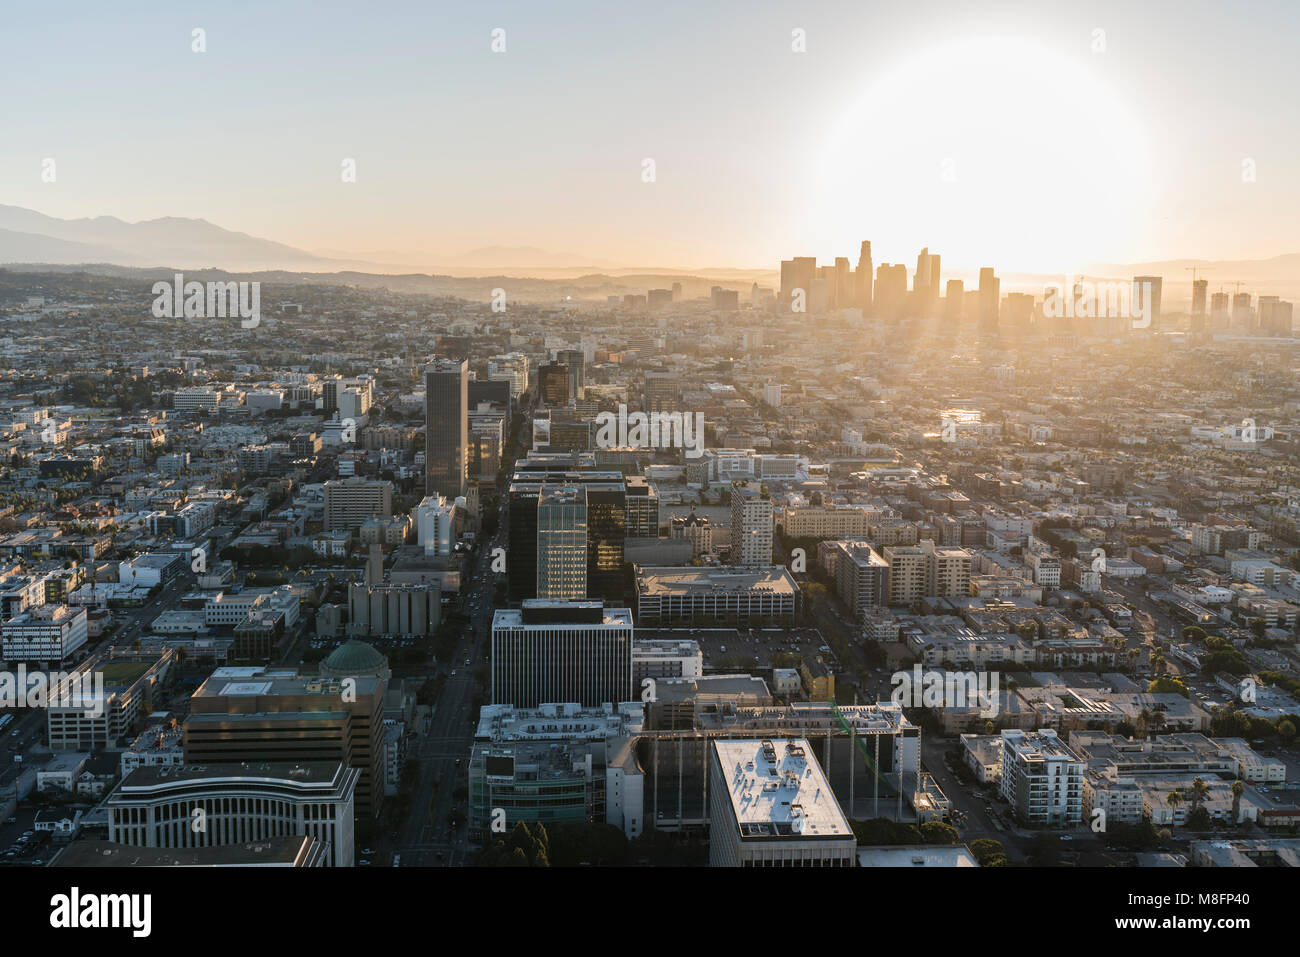 Los Angeles, California, USA - February 20, 2018:  Early morning aerial view of towers, streets and buildings along - Stock Image